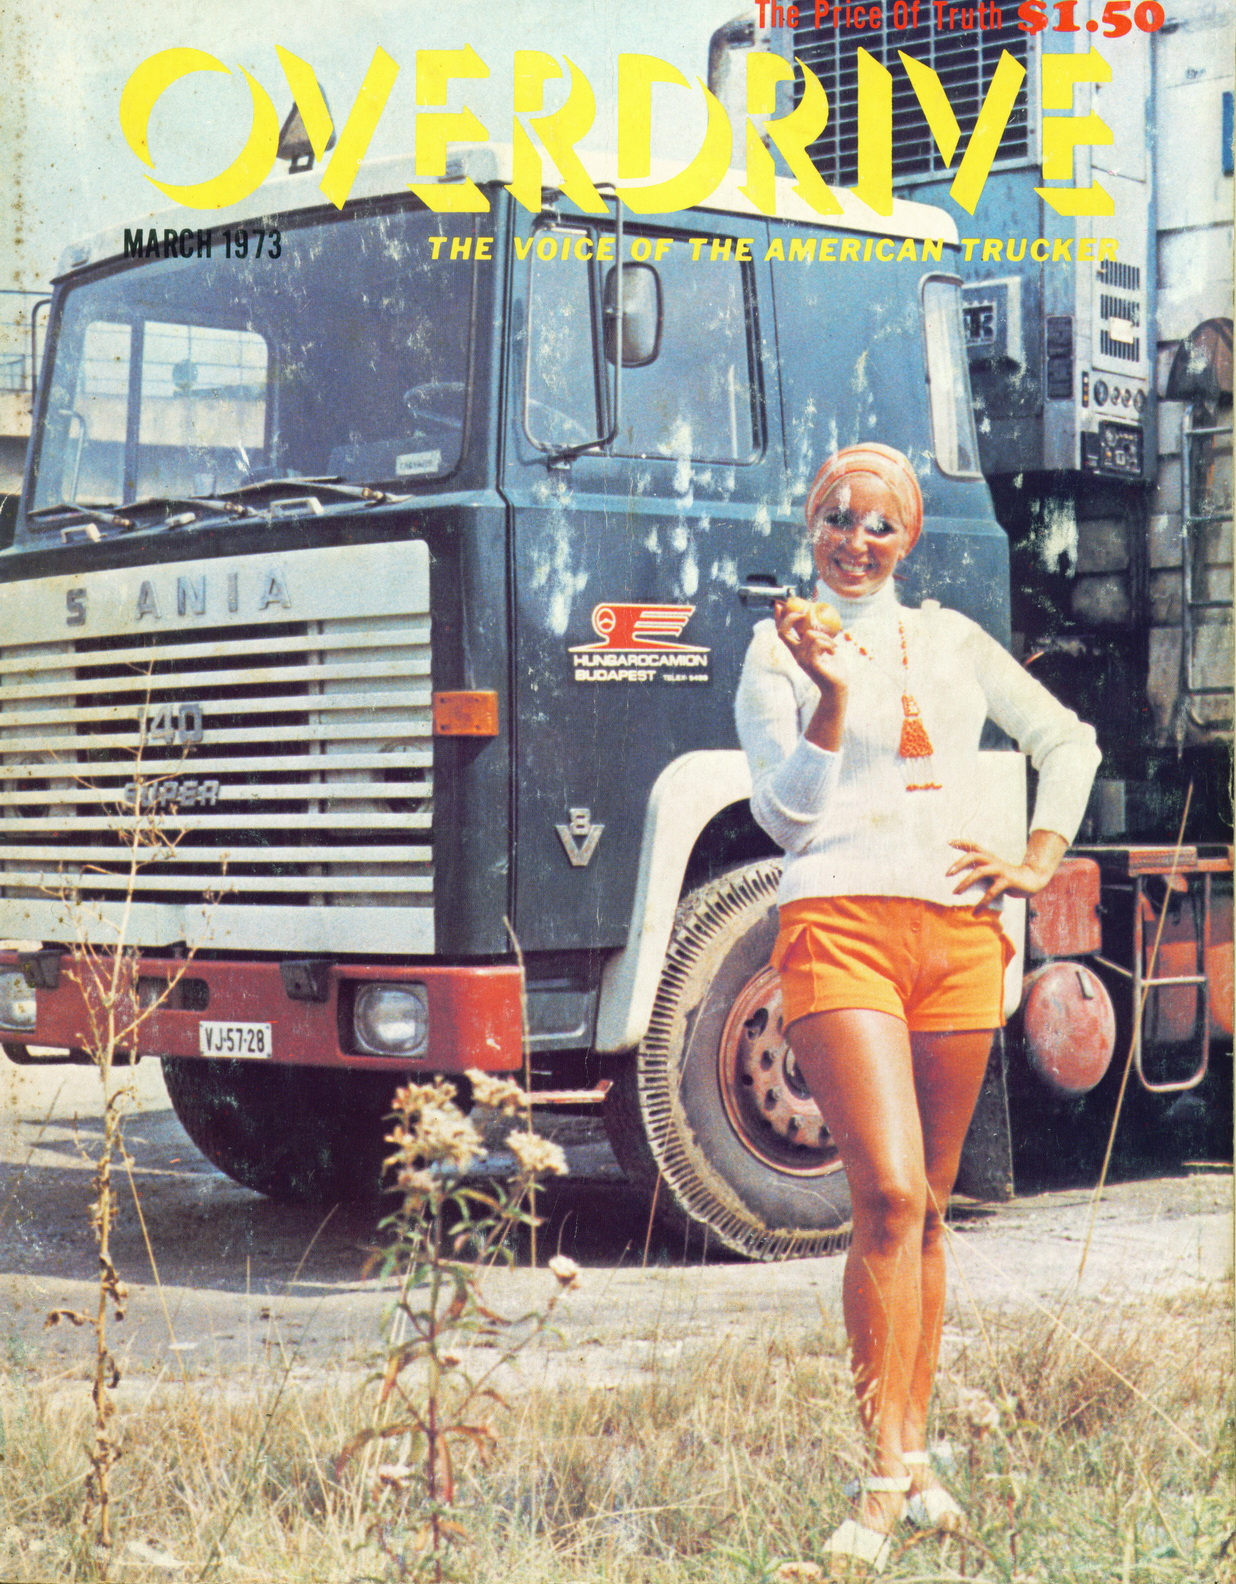 american trucker magazine - photo #36